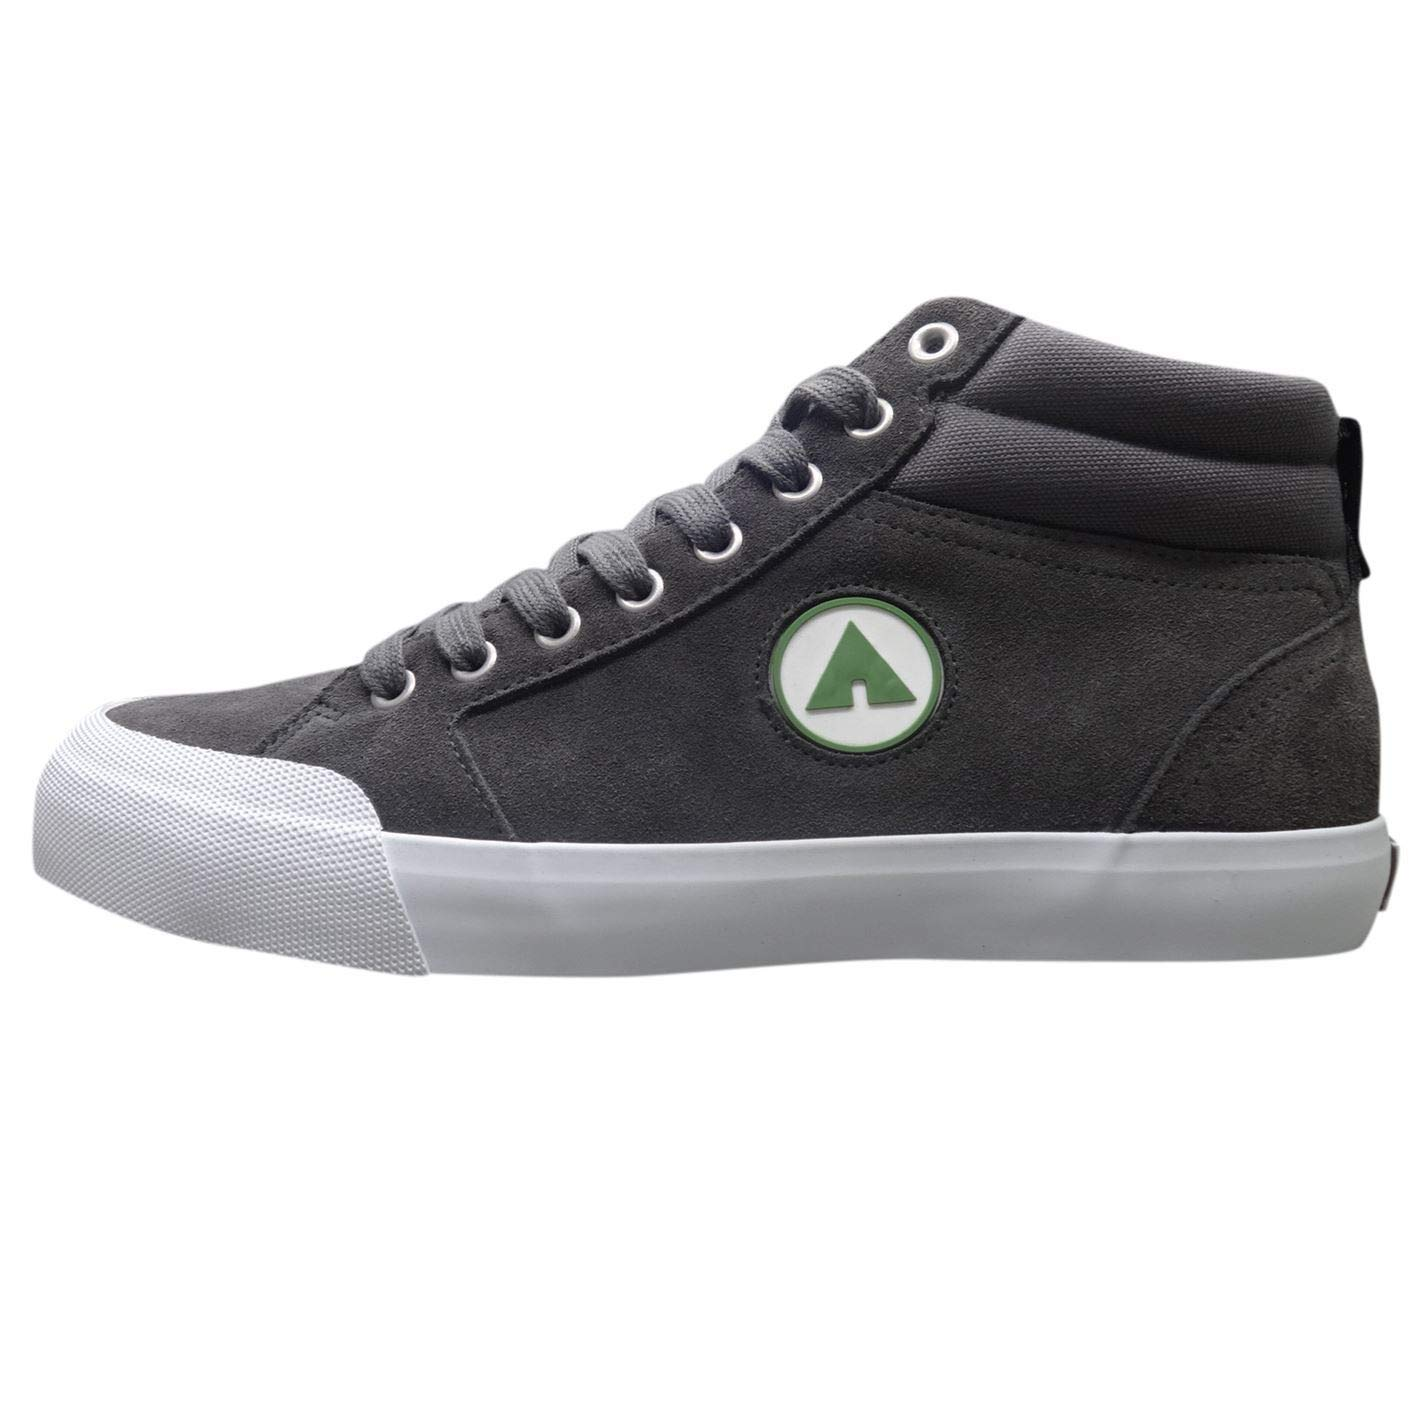 716e914936 Airwalk Pivot Mid Top Trainers Mens Skateboarding Footwear  Amazon.co.uk   Shoes   Bags